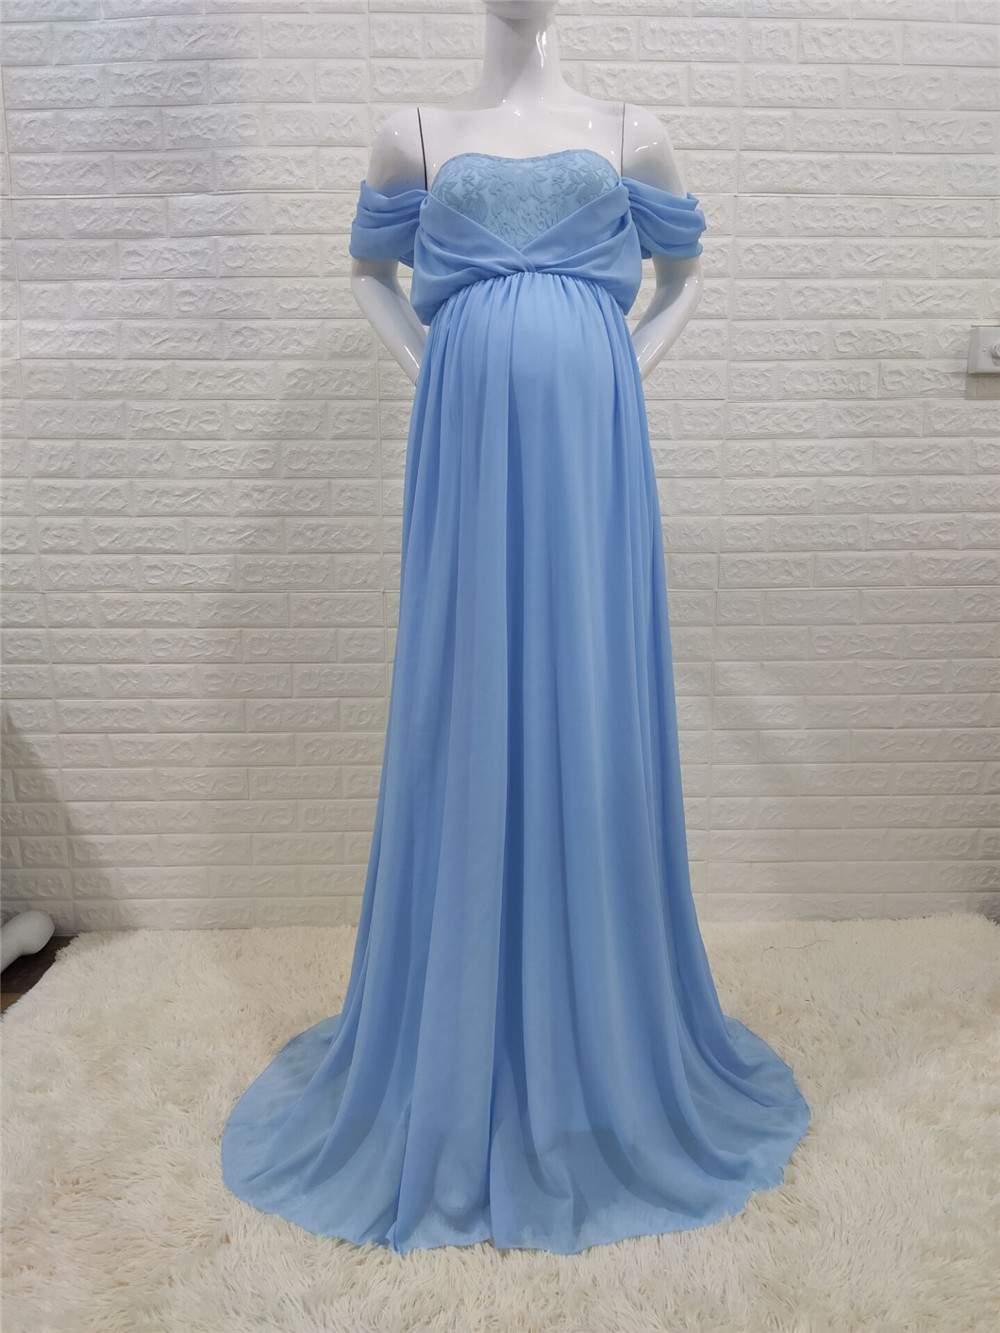 Shoulderless Sexy Maternity Dress Photo Shoot Long Pregnancy Dresses Photography Props Lace Chiffon Maxi Gown For Pregnant Women (16)